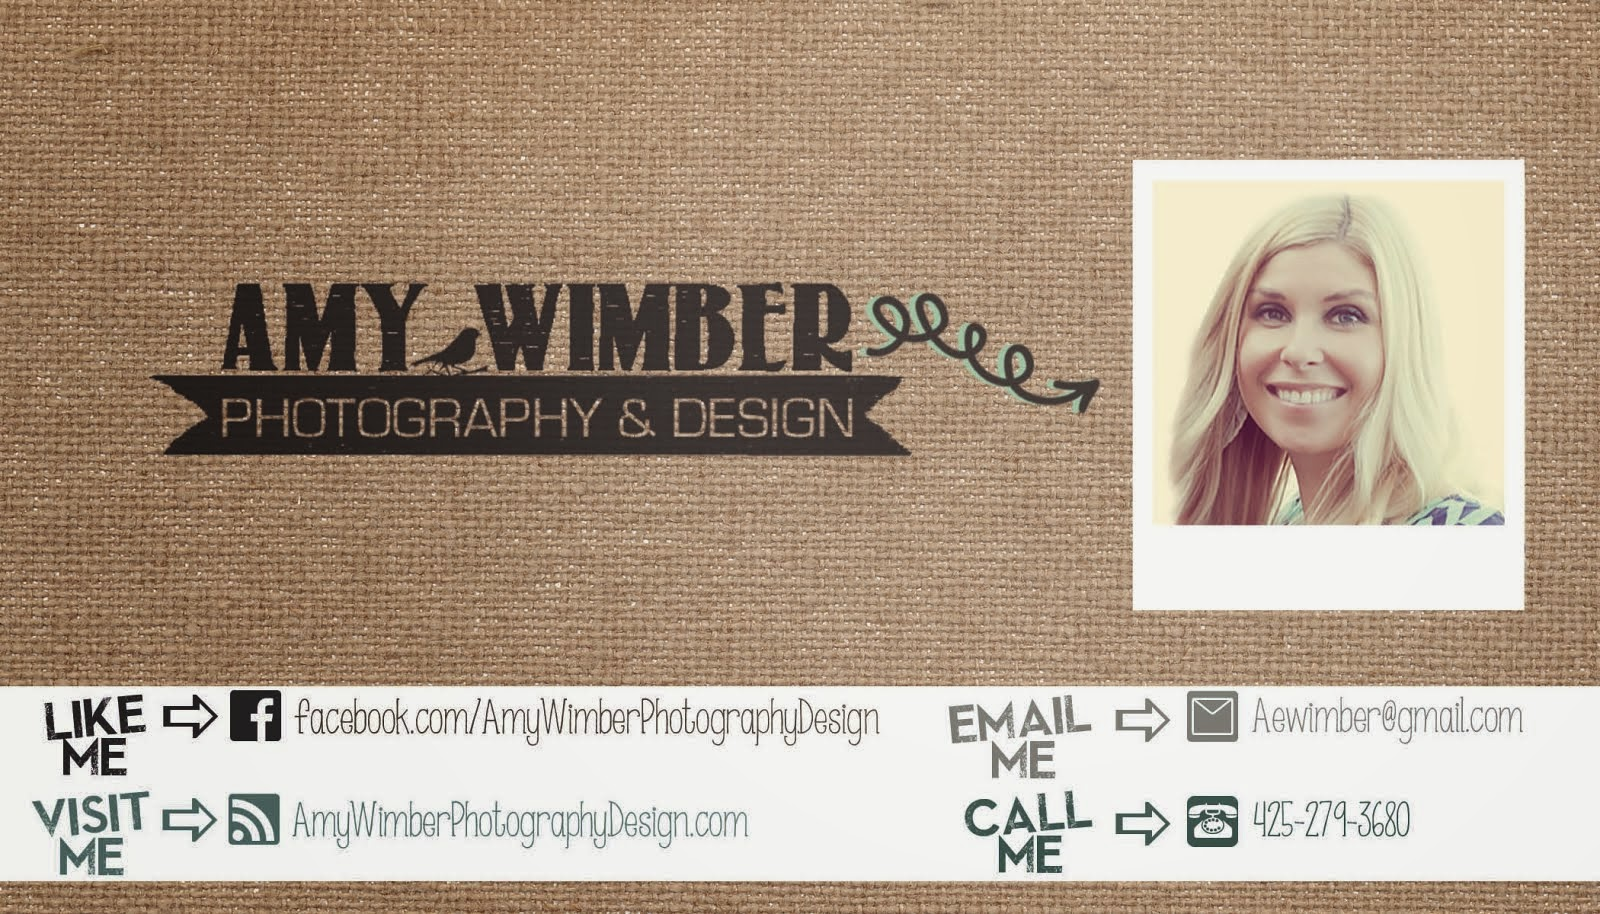 Amy Wimber Photography